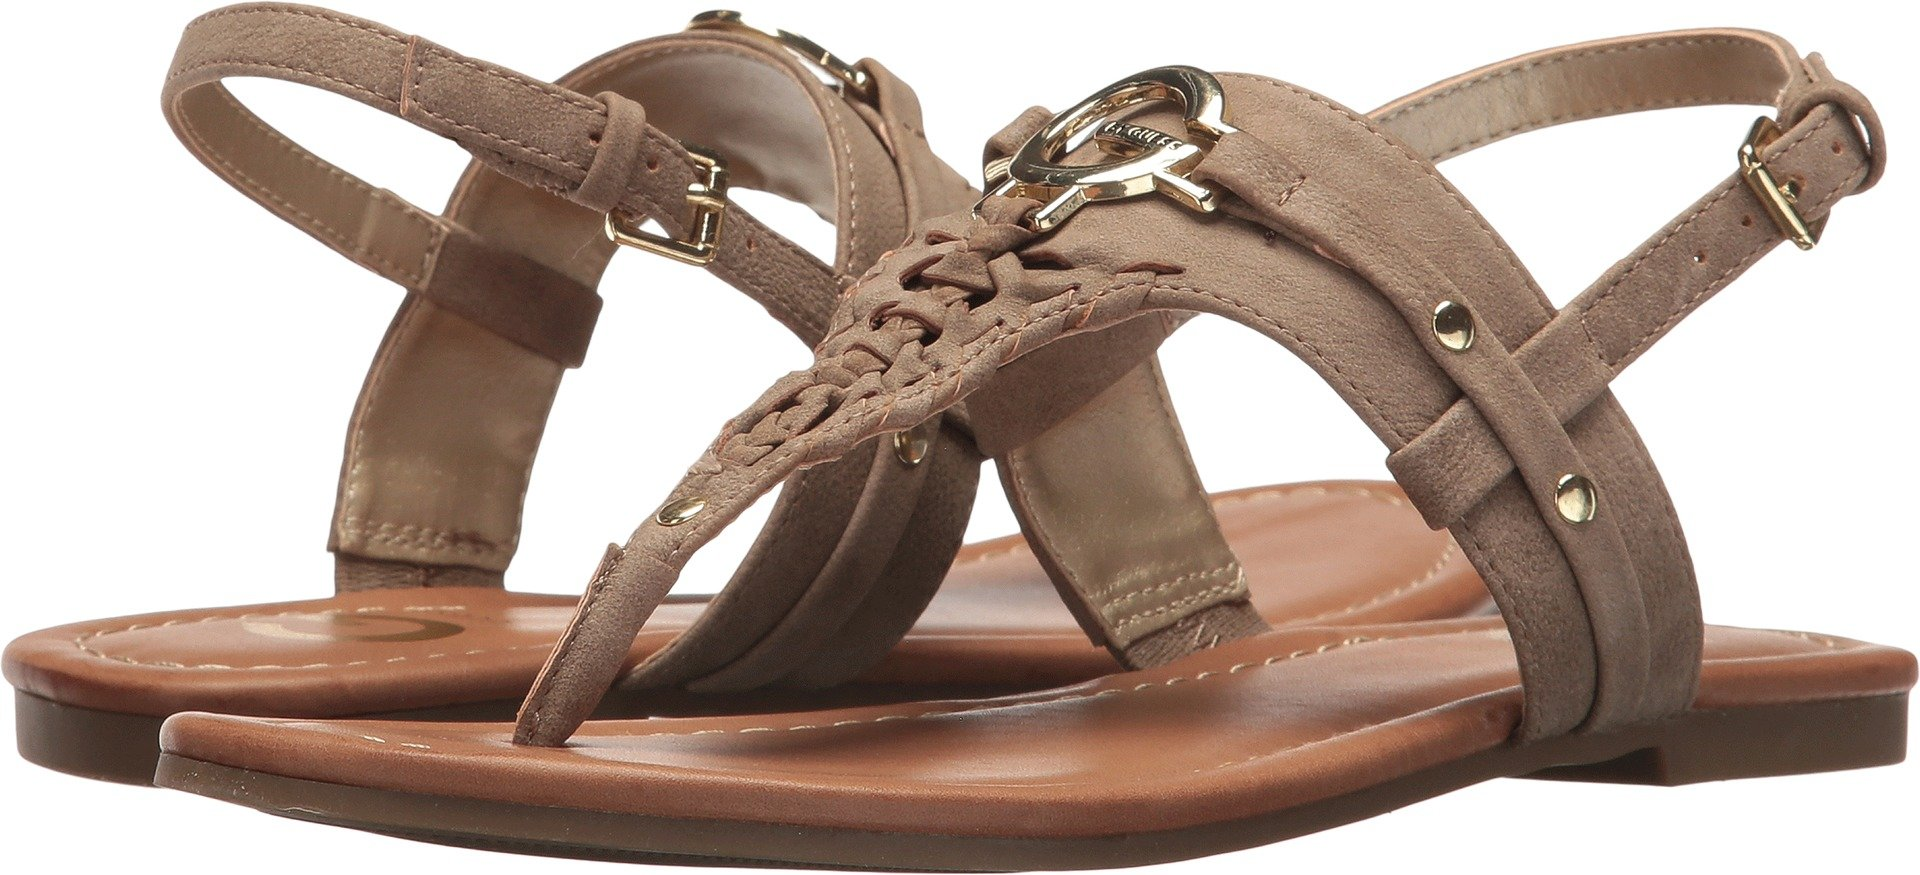 G by GUESS Women's Lemmon Natural 10 M US